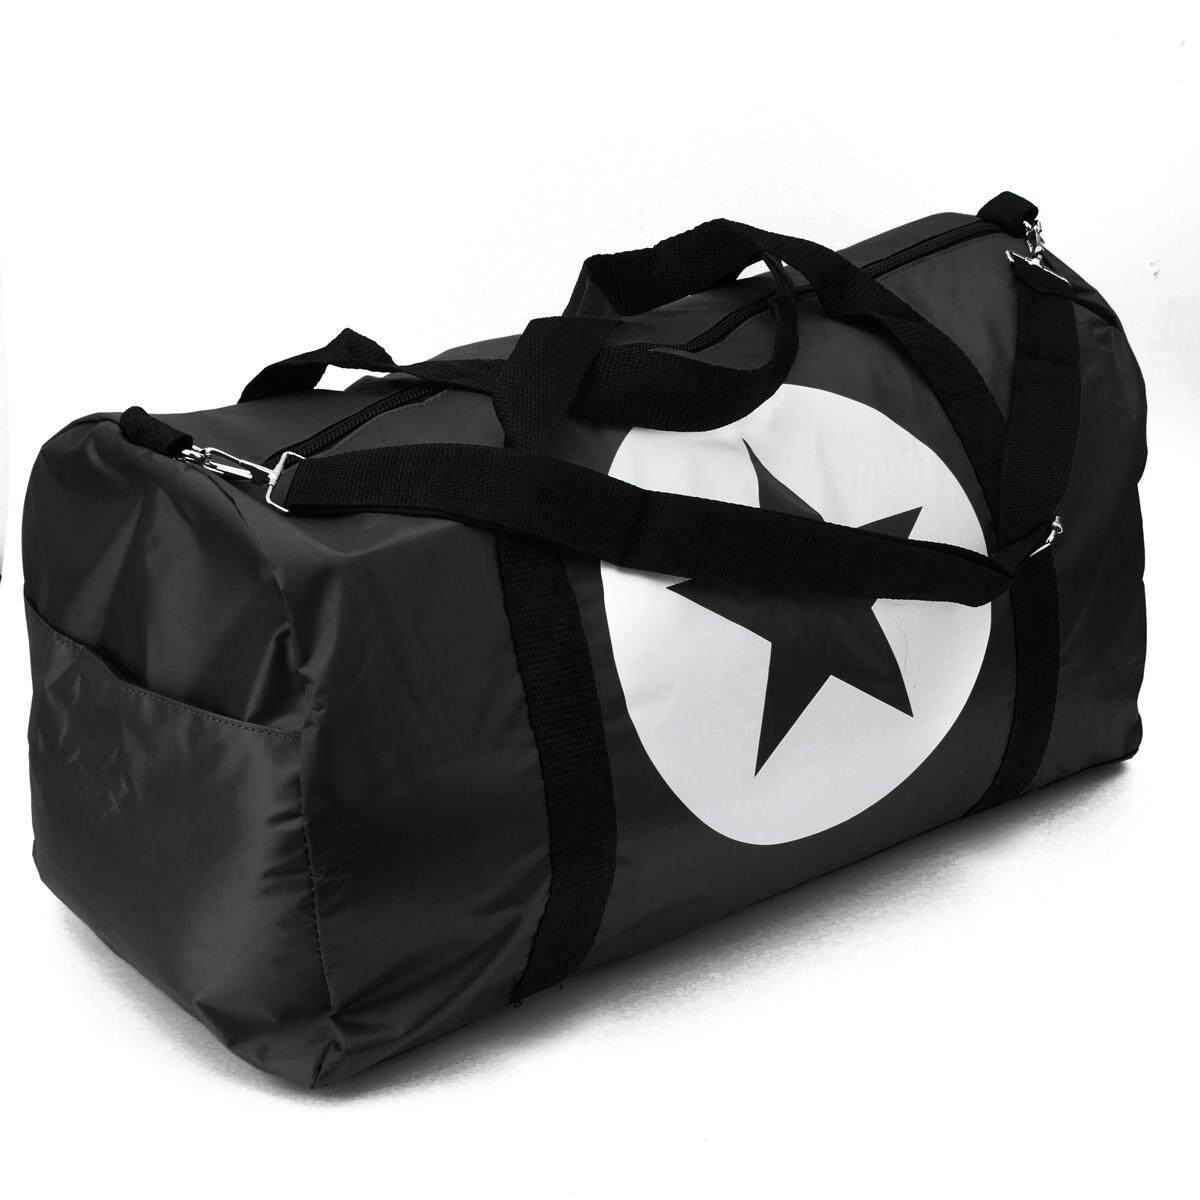 Women Men Unisex Waterproof Nylon Large Travel Bag Sports Gym Duffle Tote Star Black By Ferry.